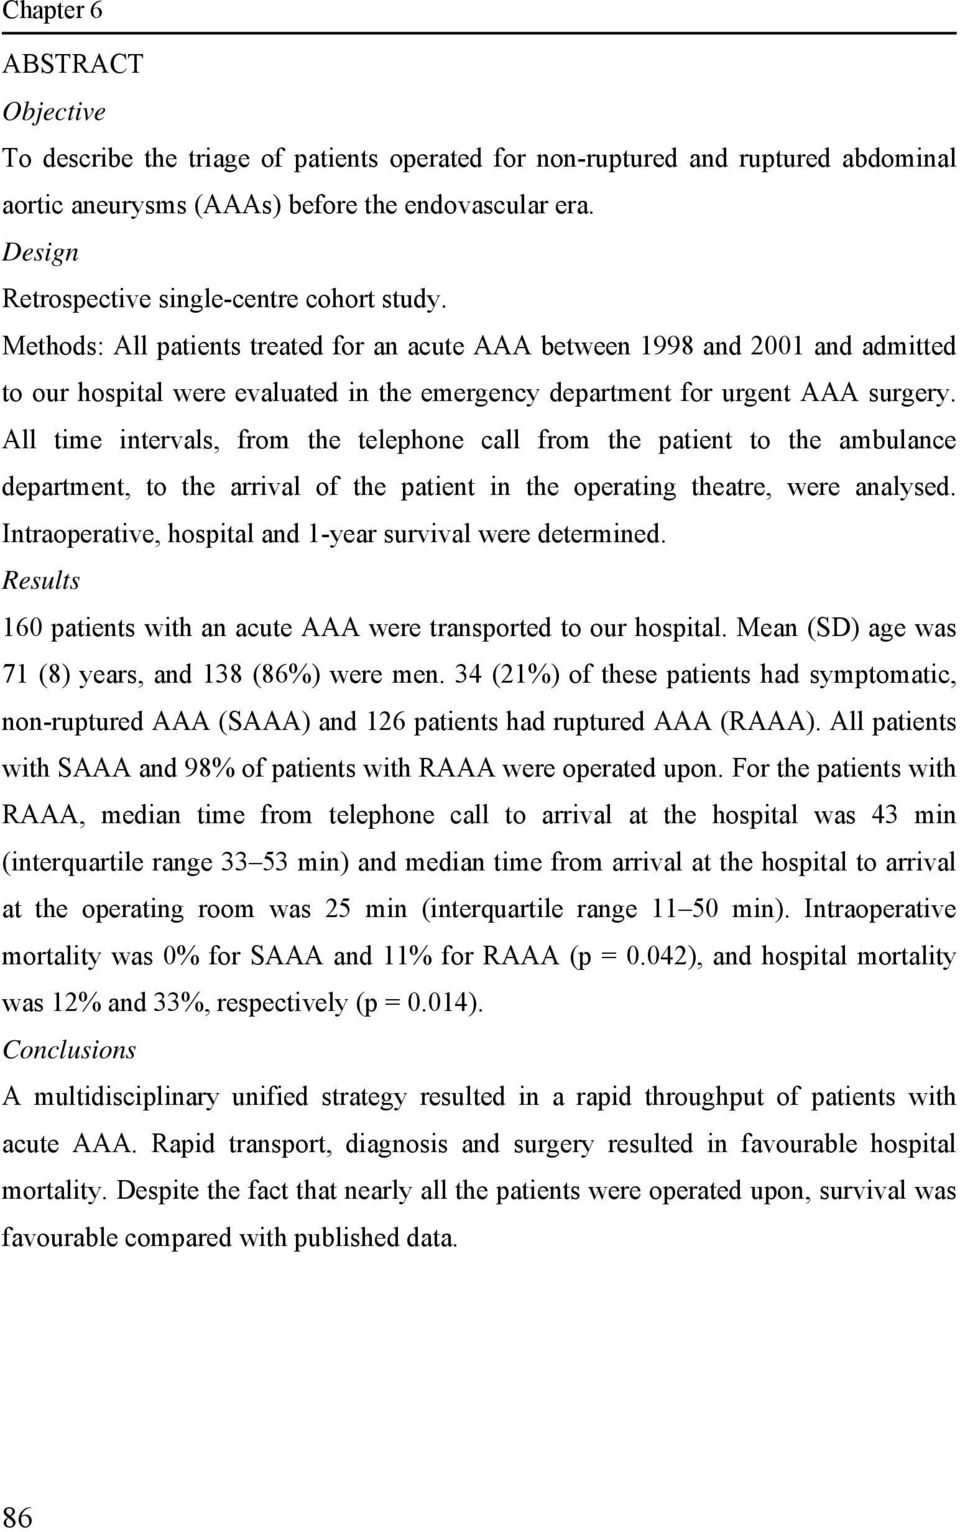 Methods: All patients treated for an acute AAA between 1998 and 2001 and admitted to our hospital were evaluated in the emergency department for urgent AAA surgery.